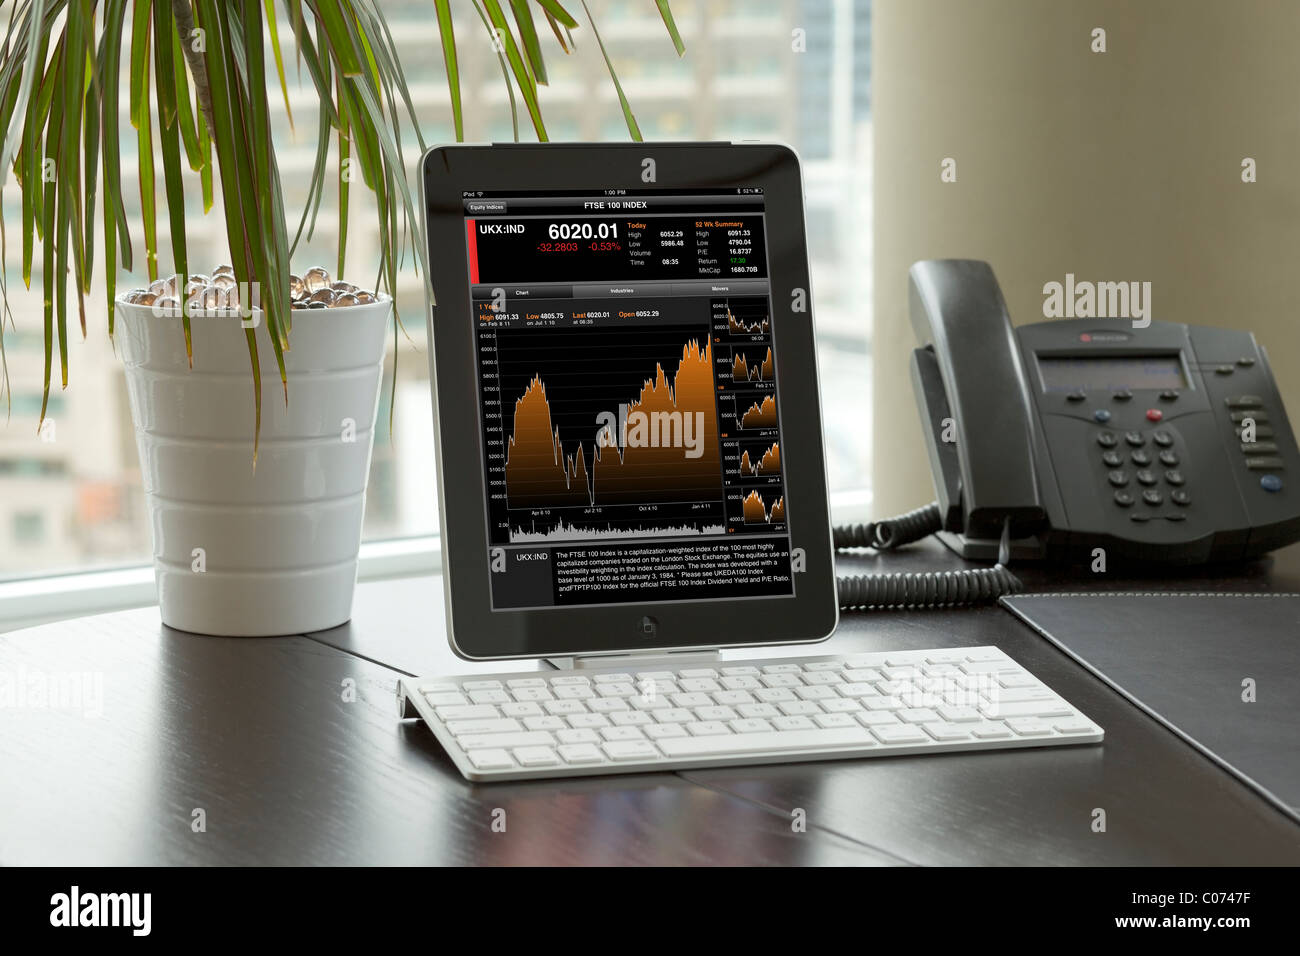 iPad being used in an office with wireless bluetooth keyboard showing Bloomberg app screen - Stock Image